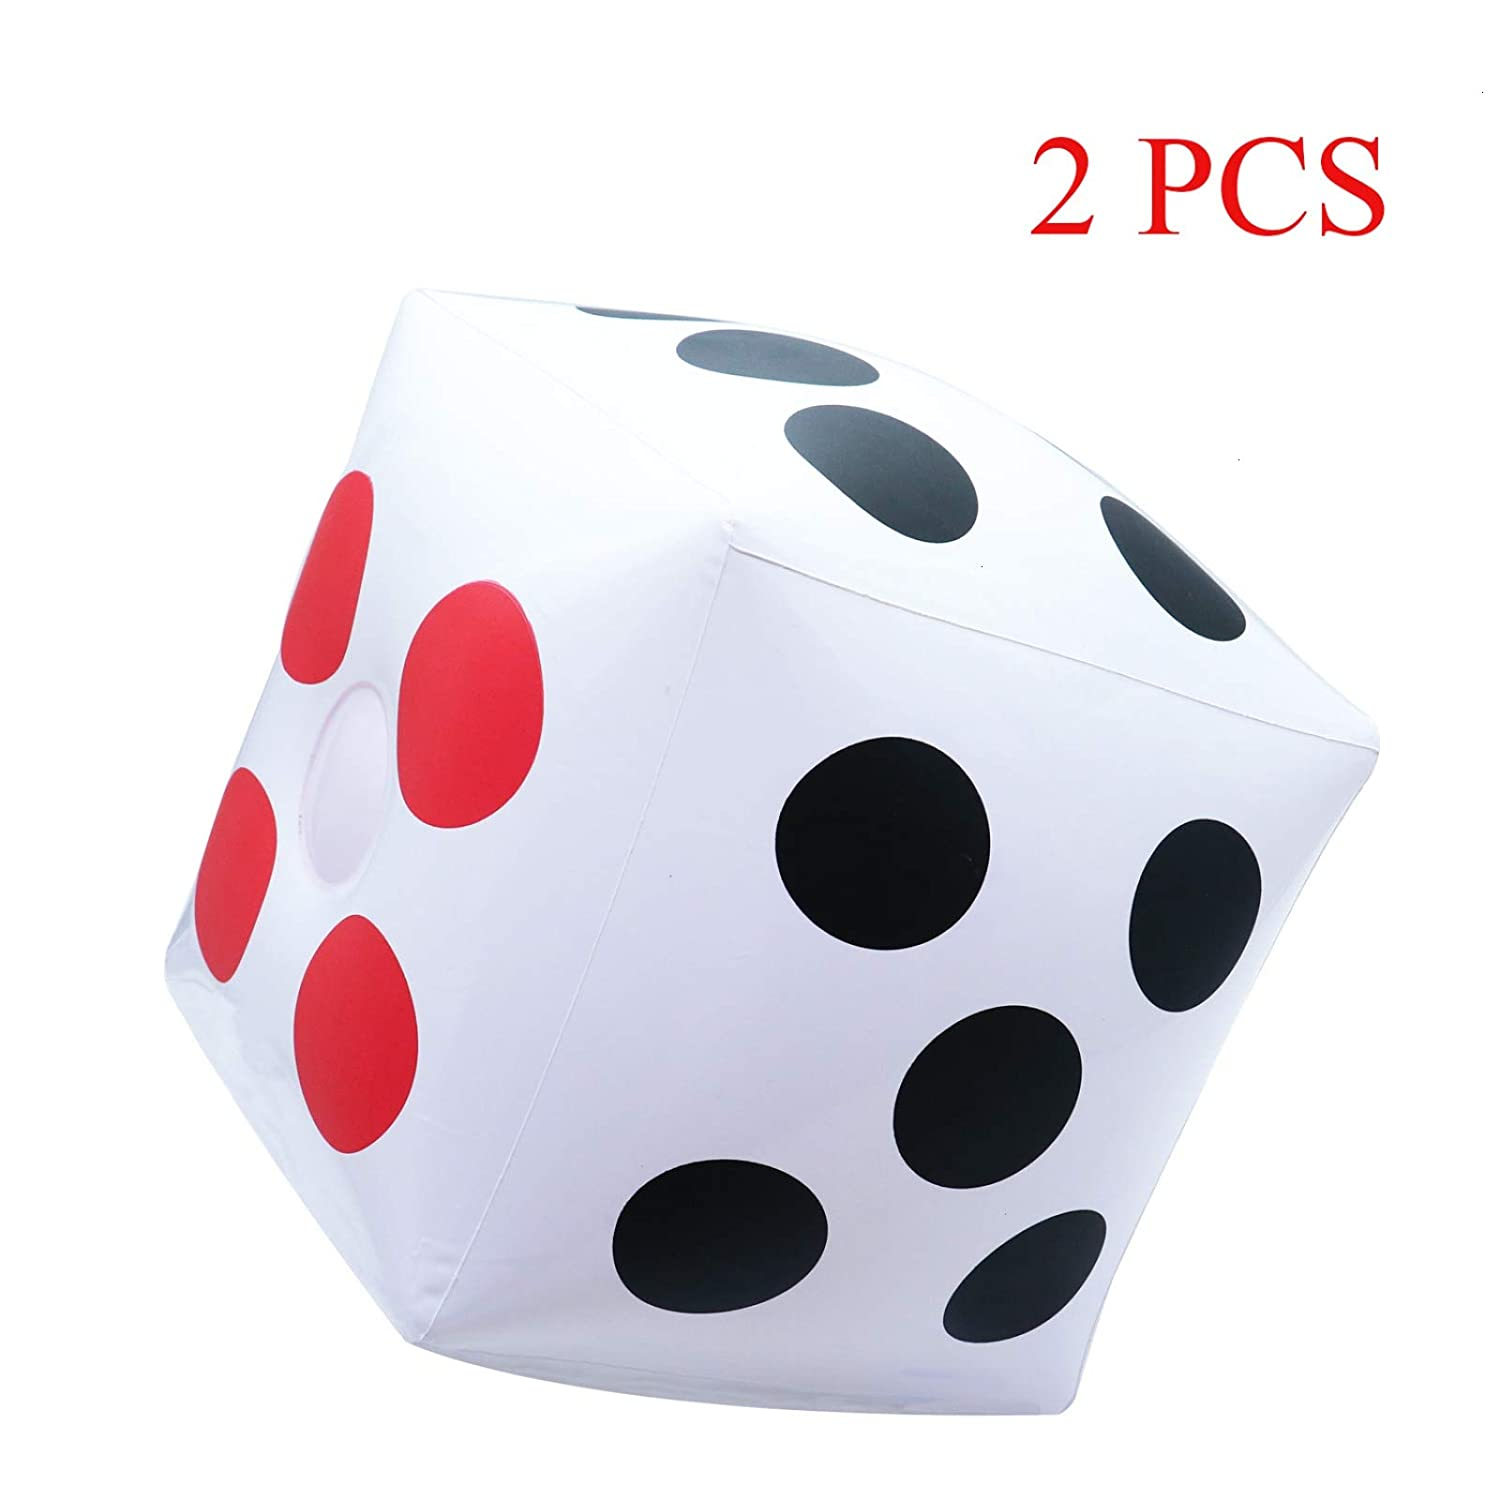 Timoo 2 PCS Giant Inflatable Dice 13'' Jumbo Dice for Game Pool Toy Party Favour